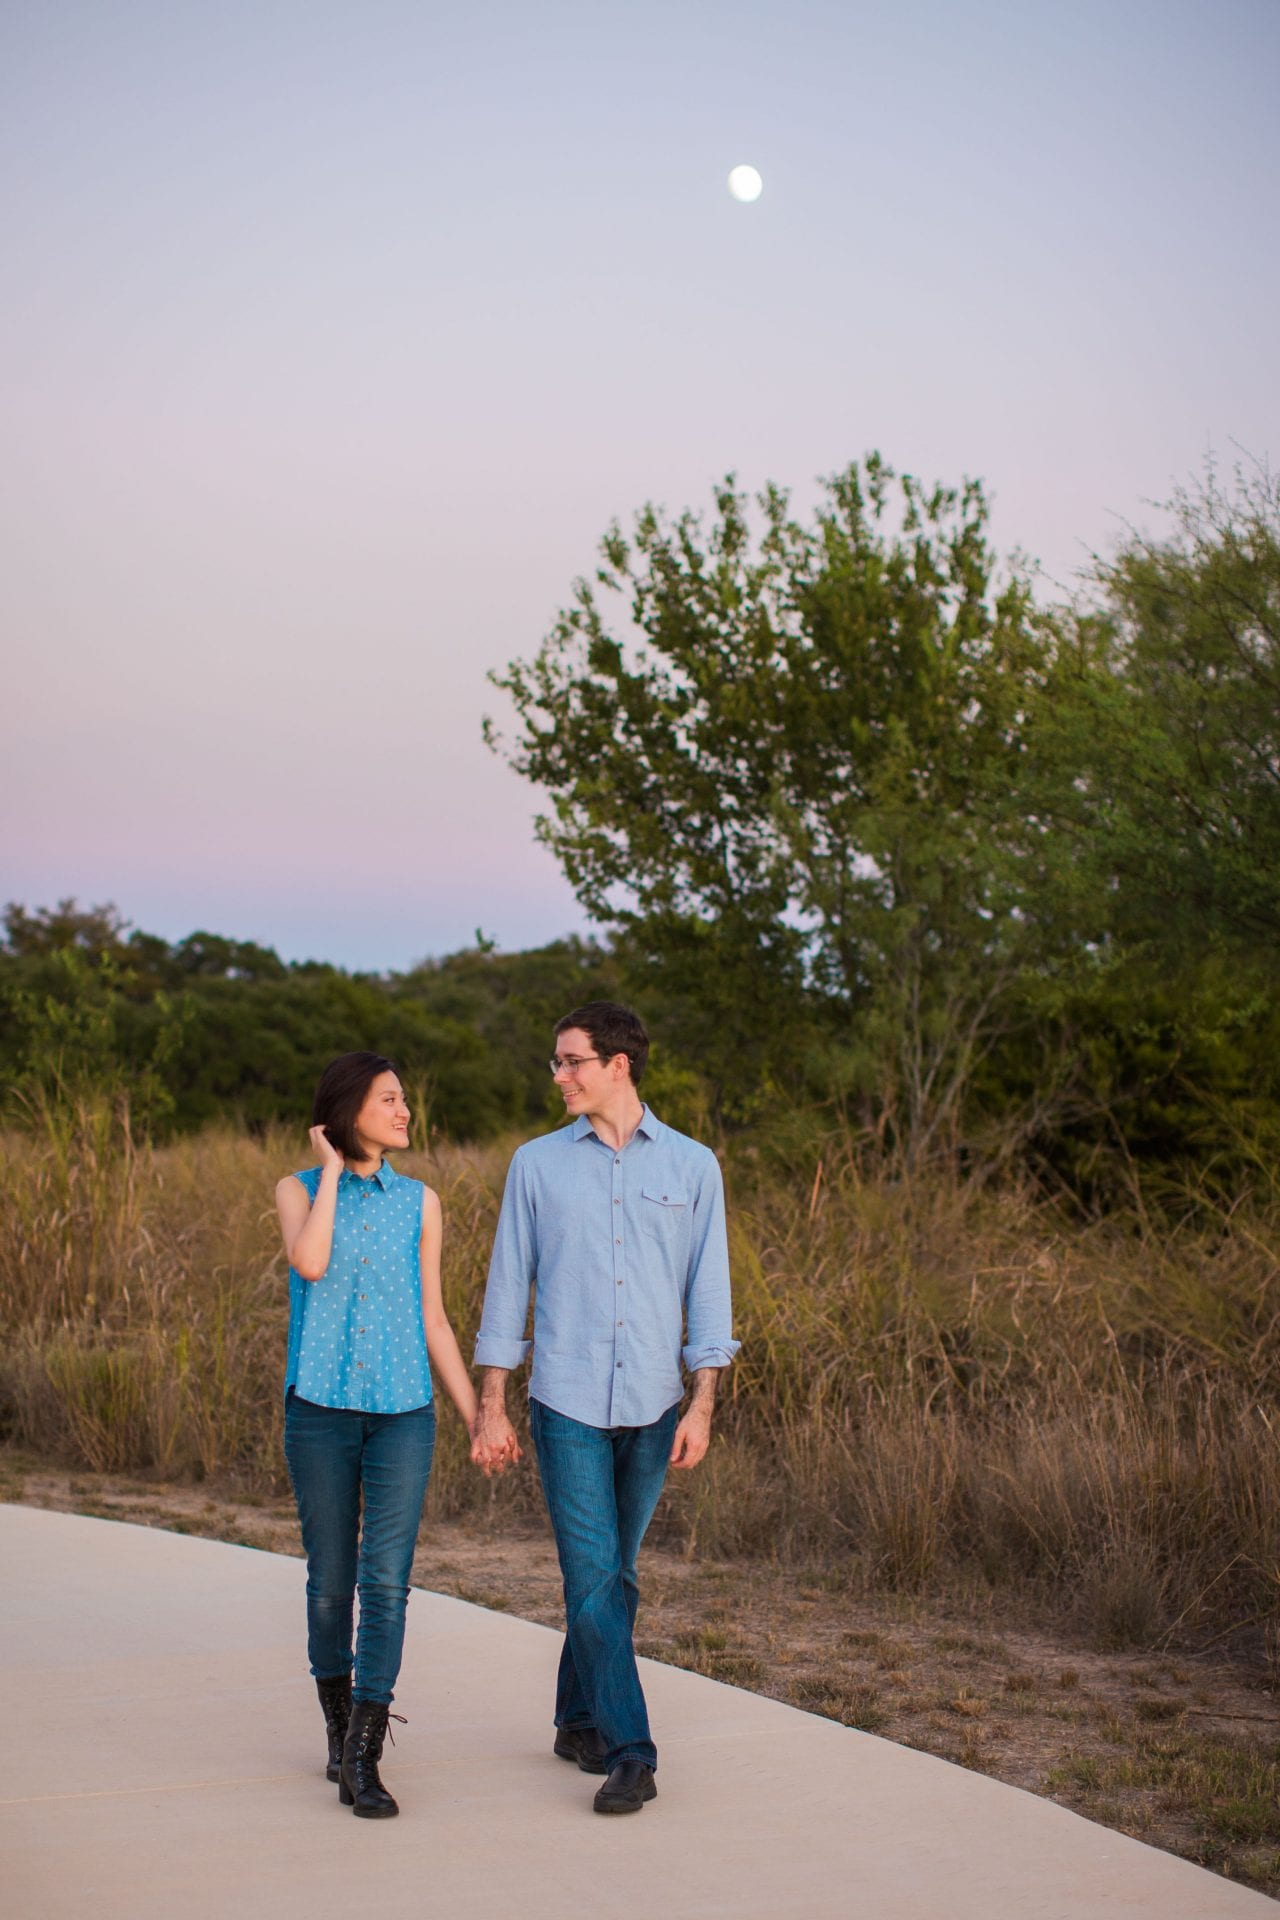 Josh and Tina engagement session at park on the path walking